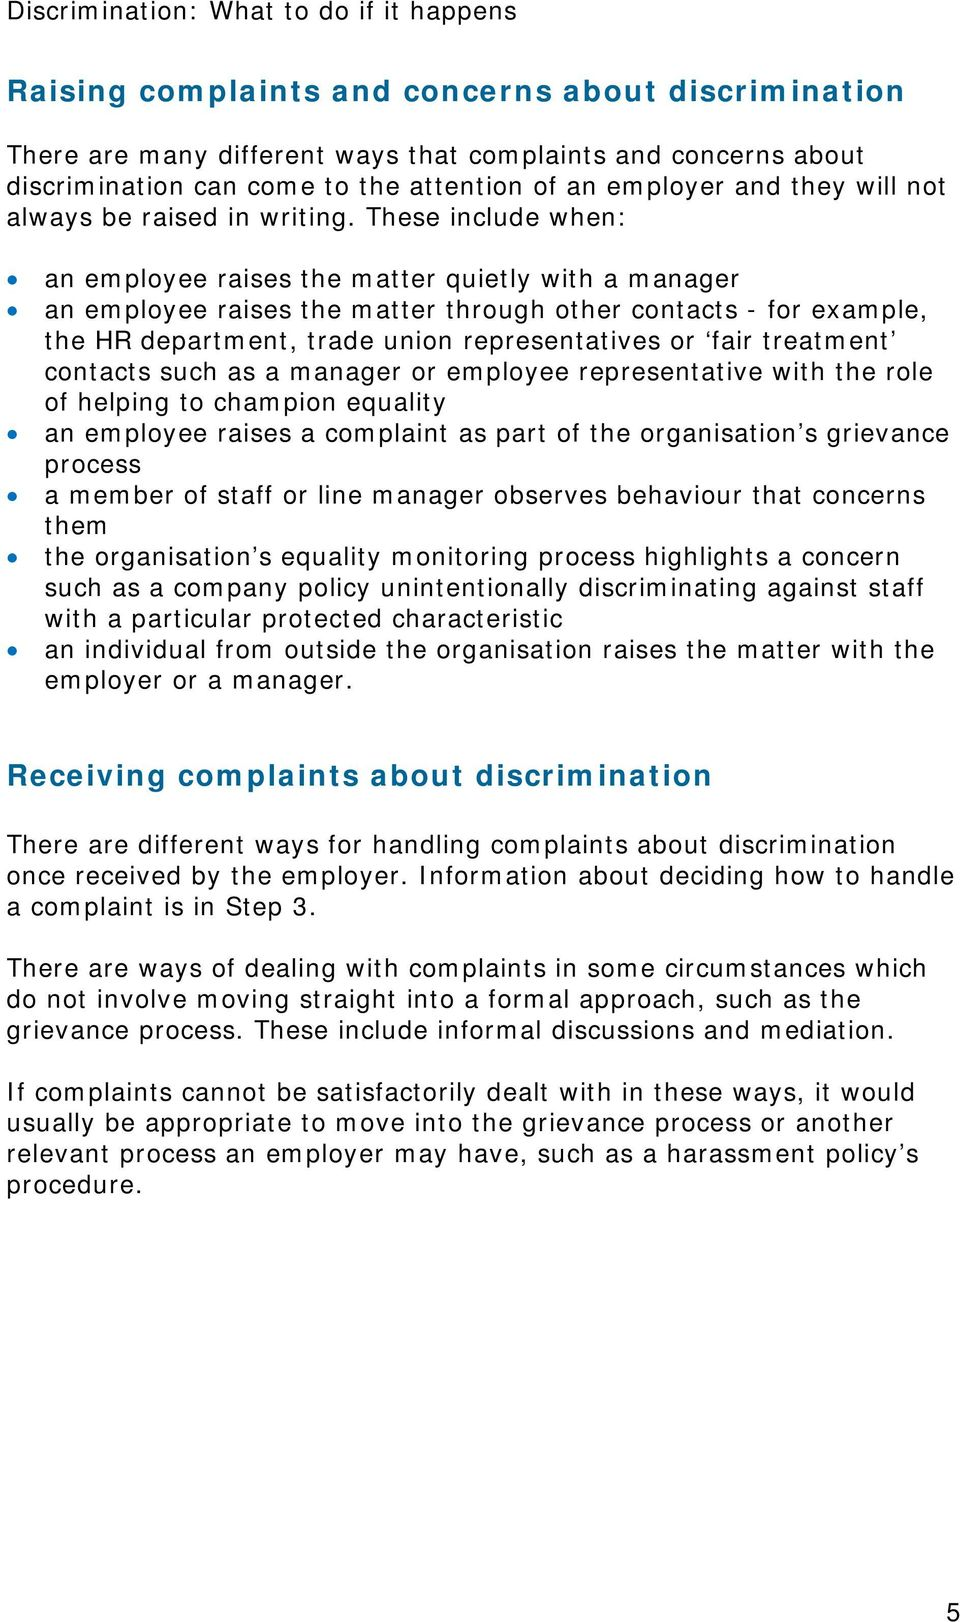 These include when: an employee raises the matter quietly with a manager an employee raises the matter through other contacts - for example, the HR department, trade union representatives or fair